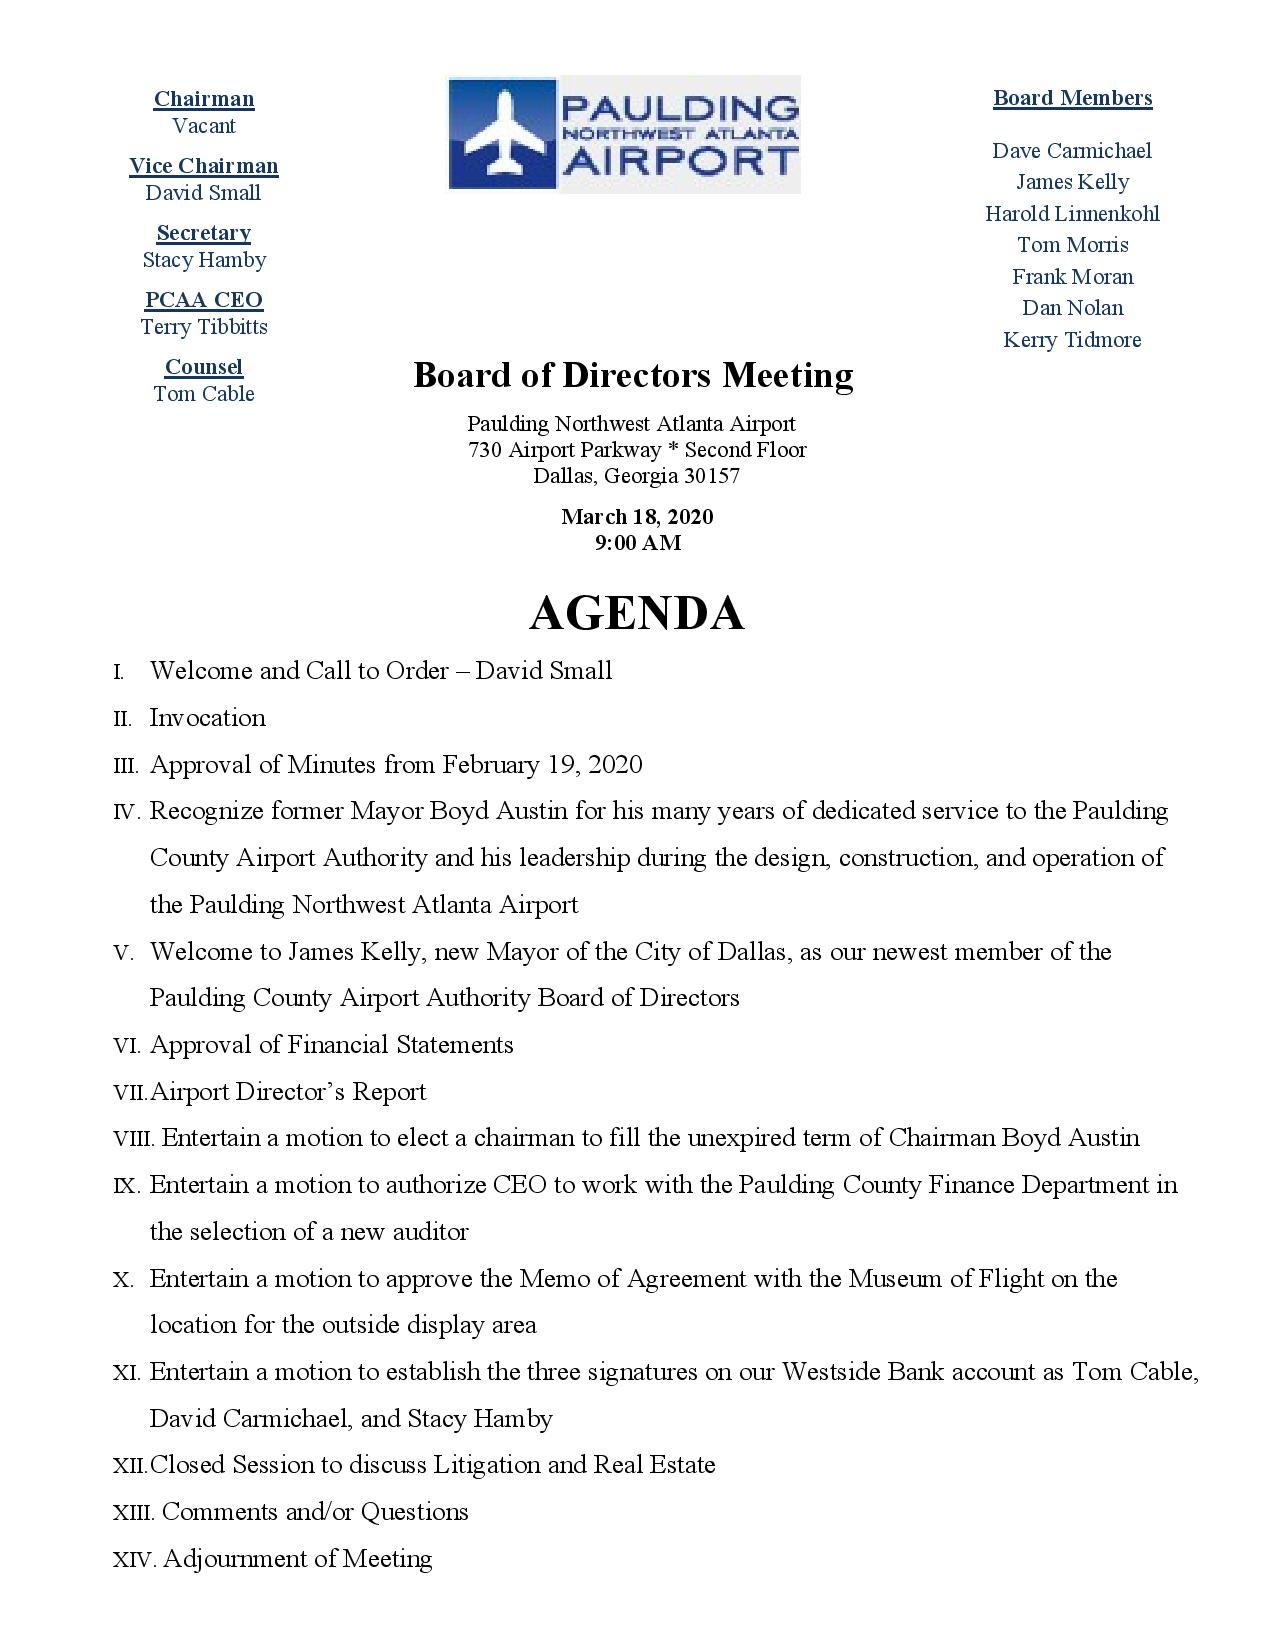 03.18.20 PCAA Agenda-page-001